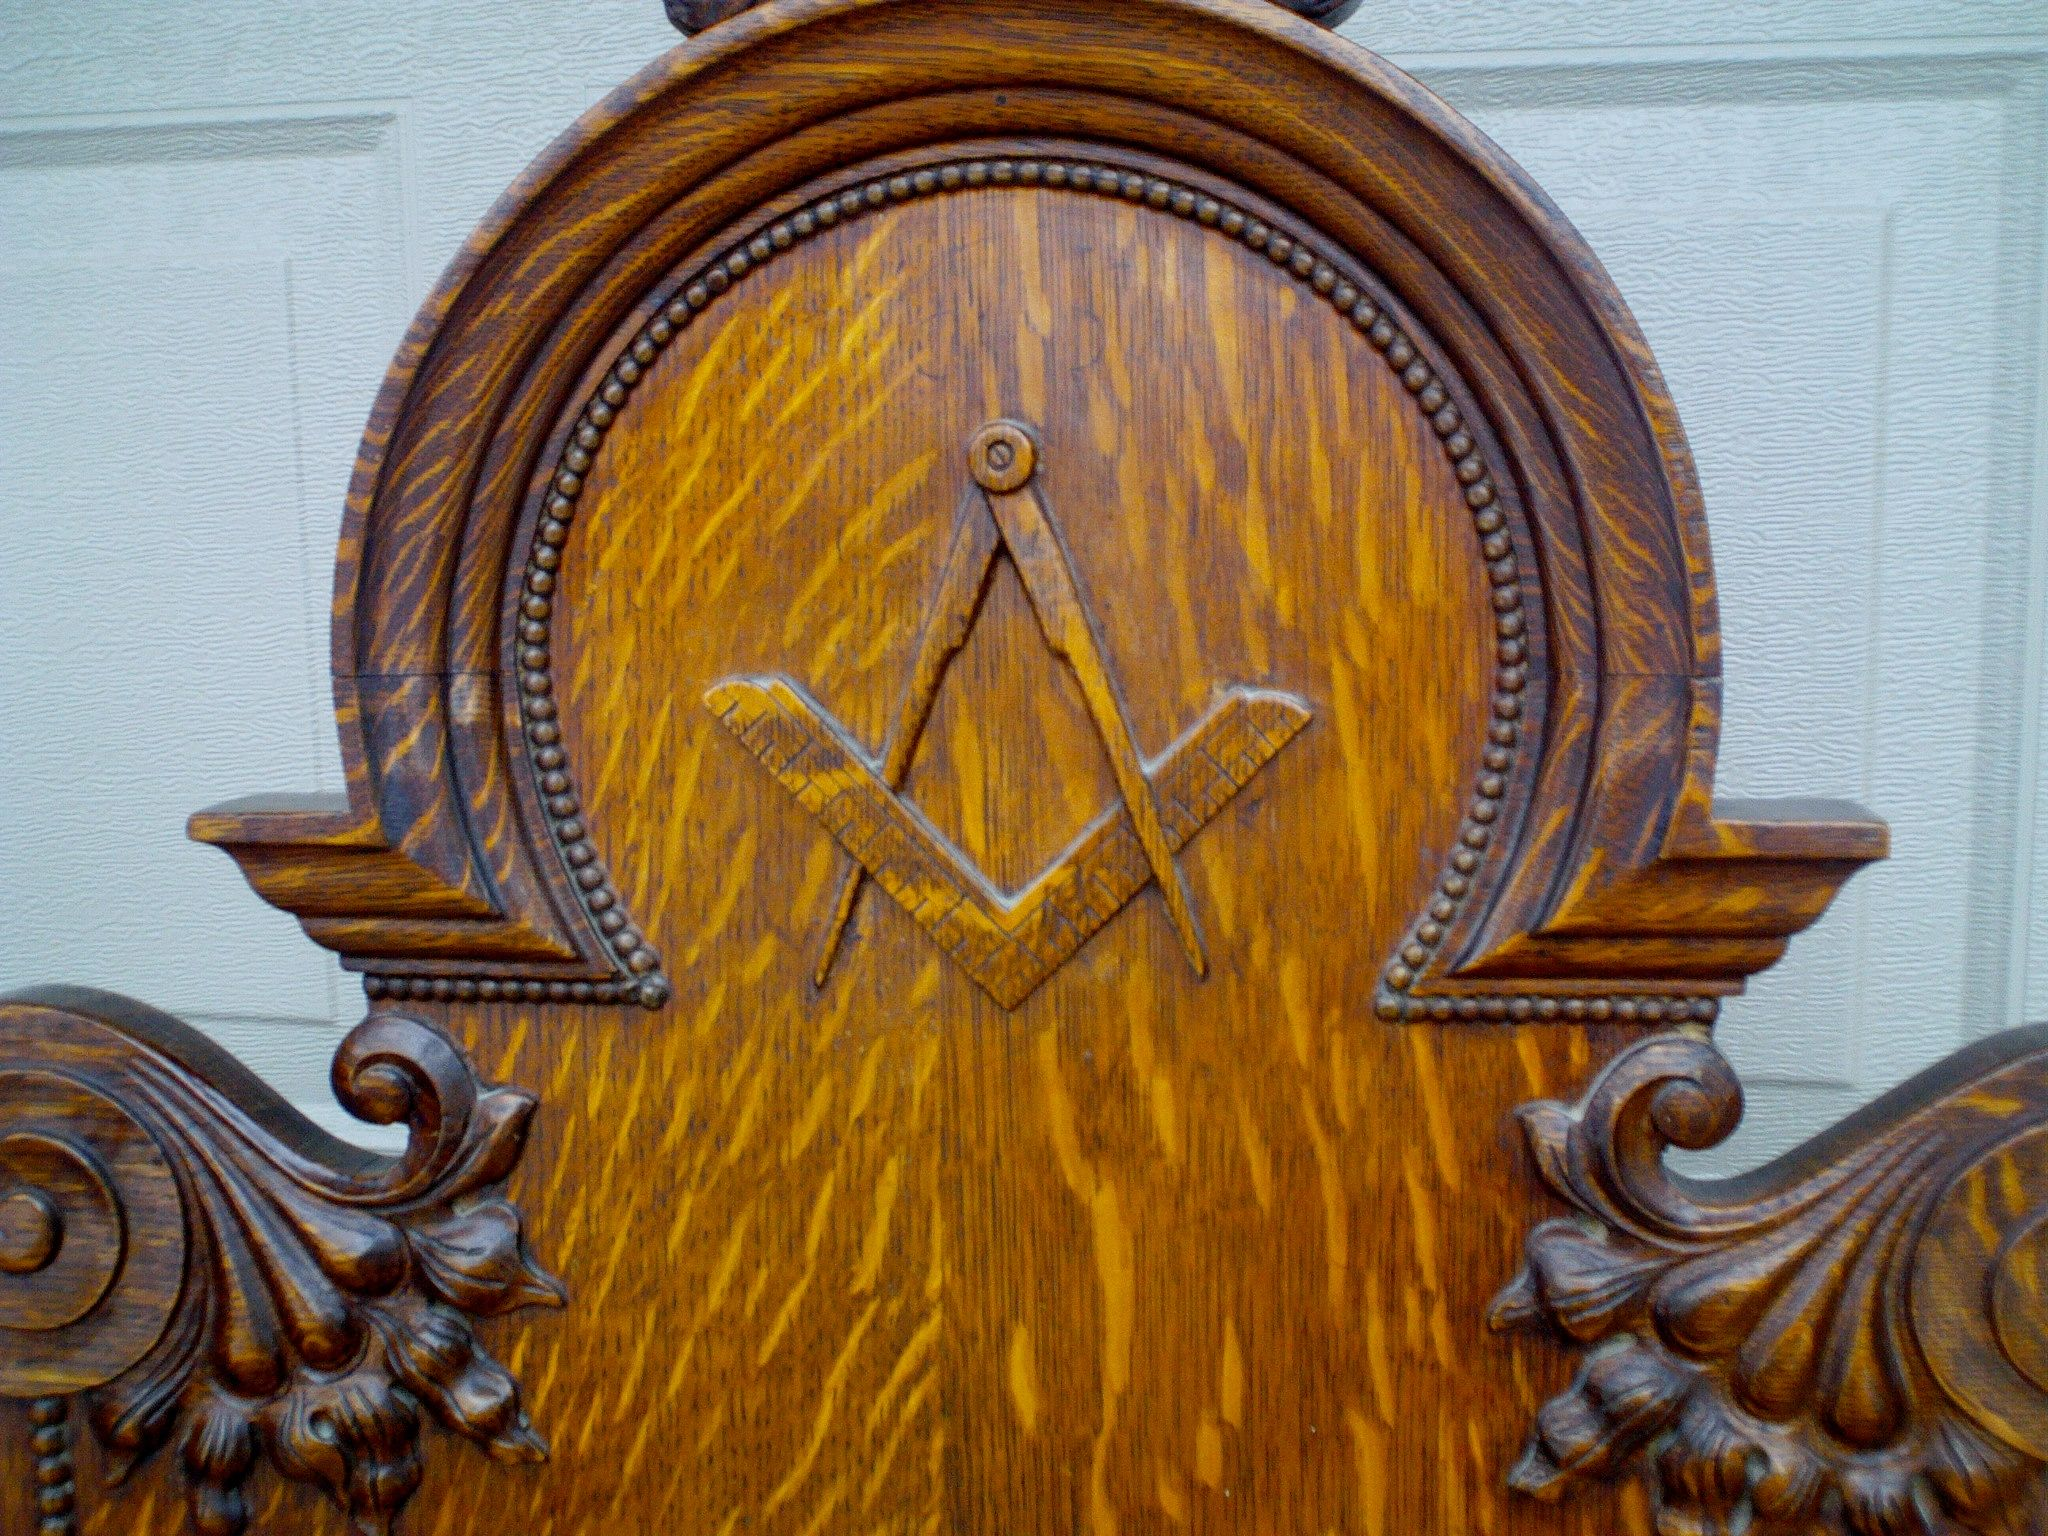 Antique gothic revival furniture for sale - Antique Gothic Ornate Carved Oak Masonic Chair For Sale Antiques